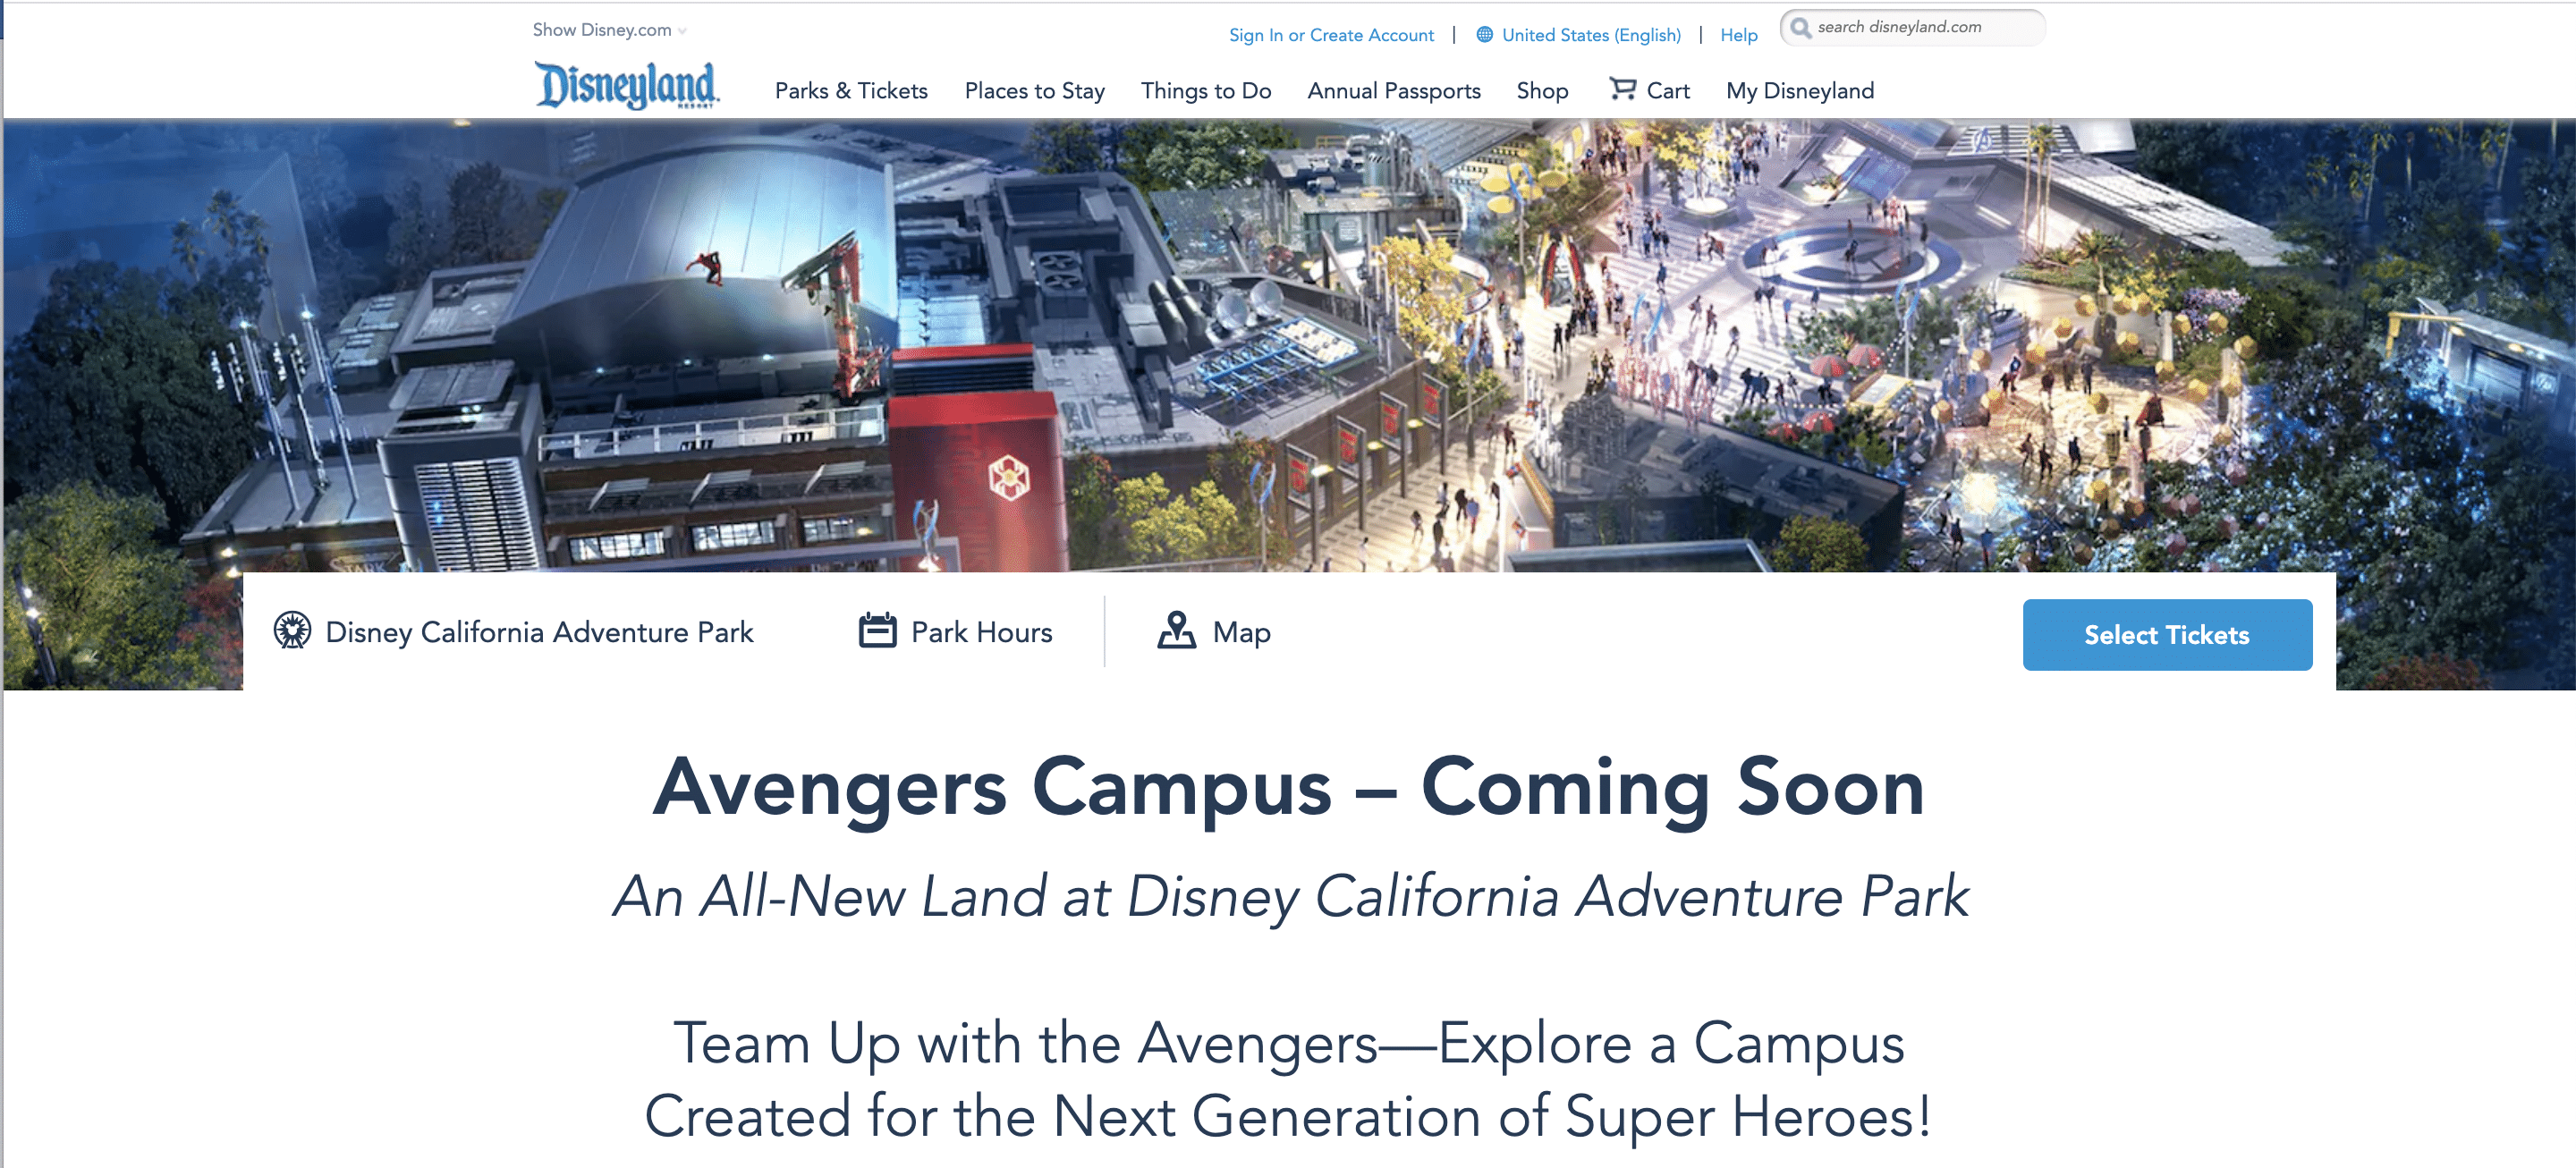 Avengers Campus - Coming Soon